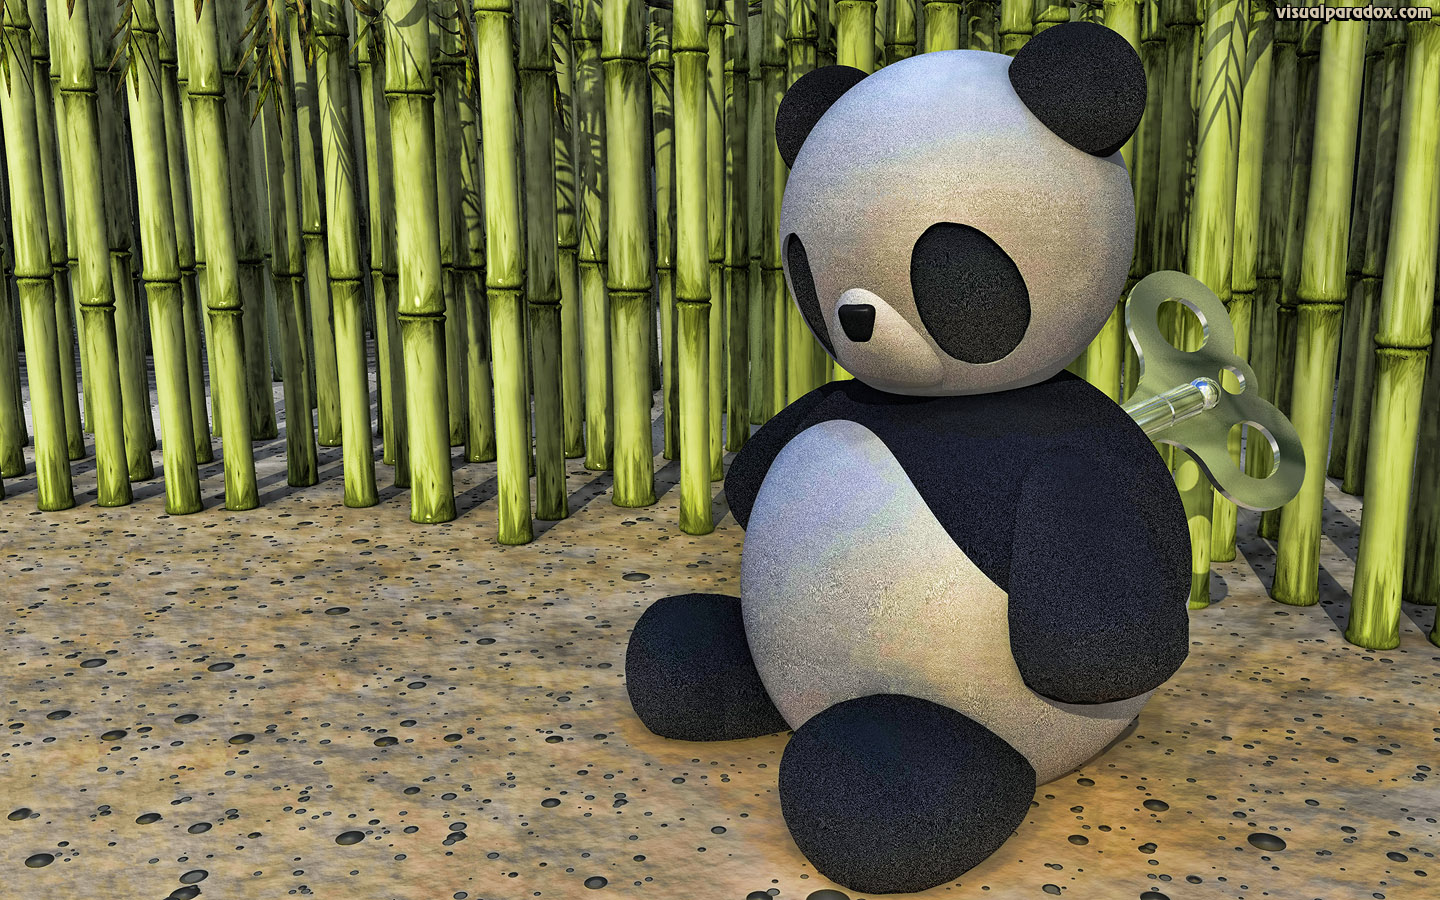 panda, clockwork, wind-up, key, china, winding, toy, doll, bamboo, cane, bear, wound, down, 3d, wallpaper